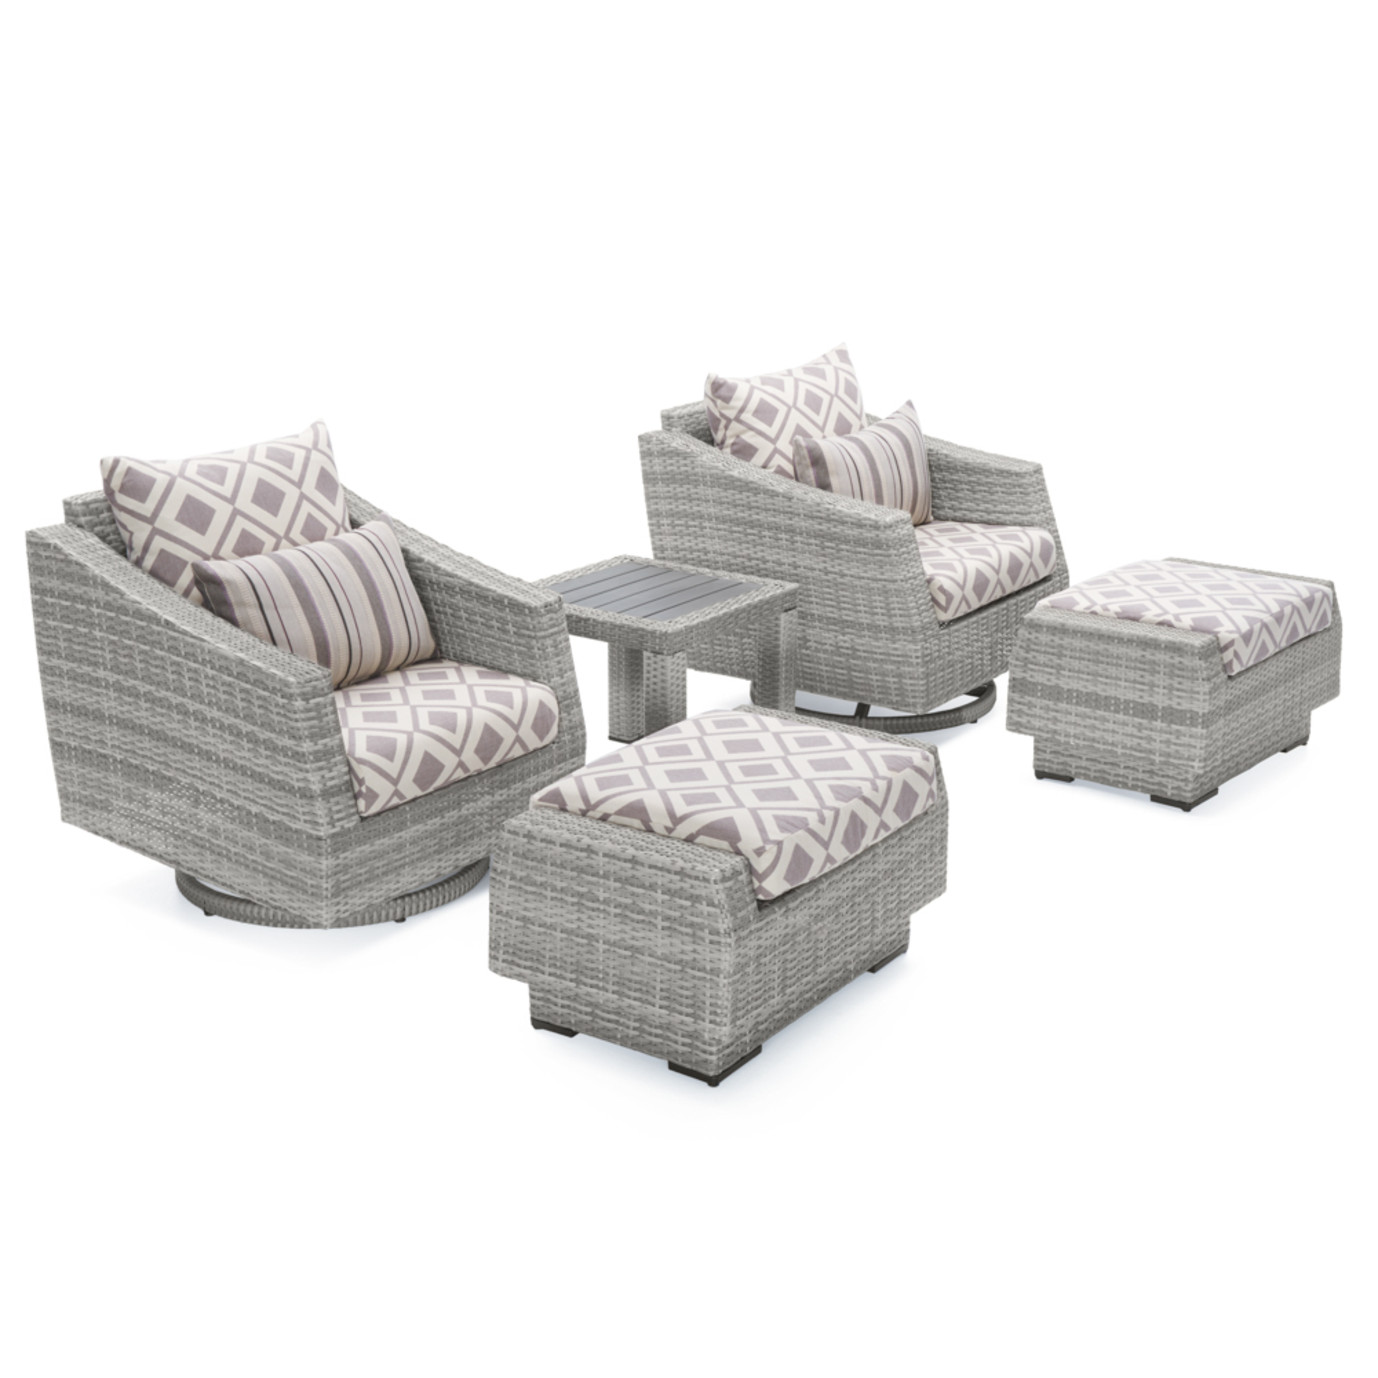 Cannes™ Deluxe 5pc Motion Club Chair Set - Wisteria Lavender